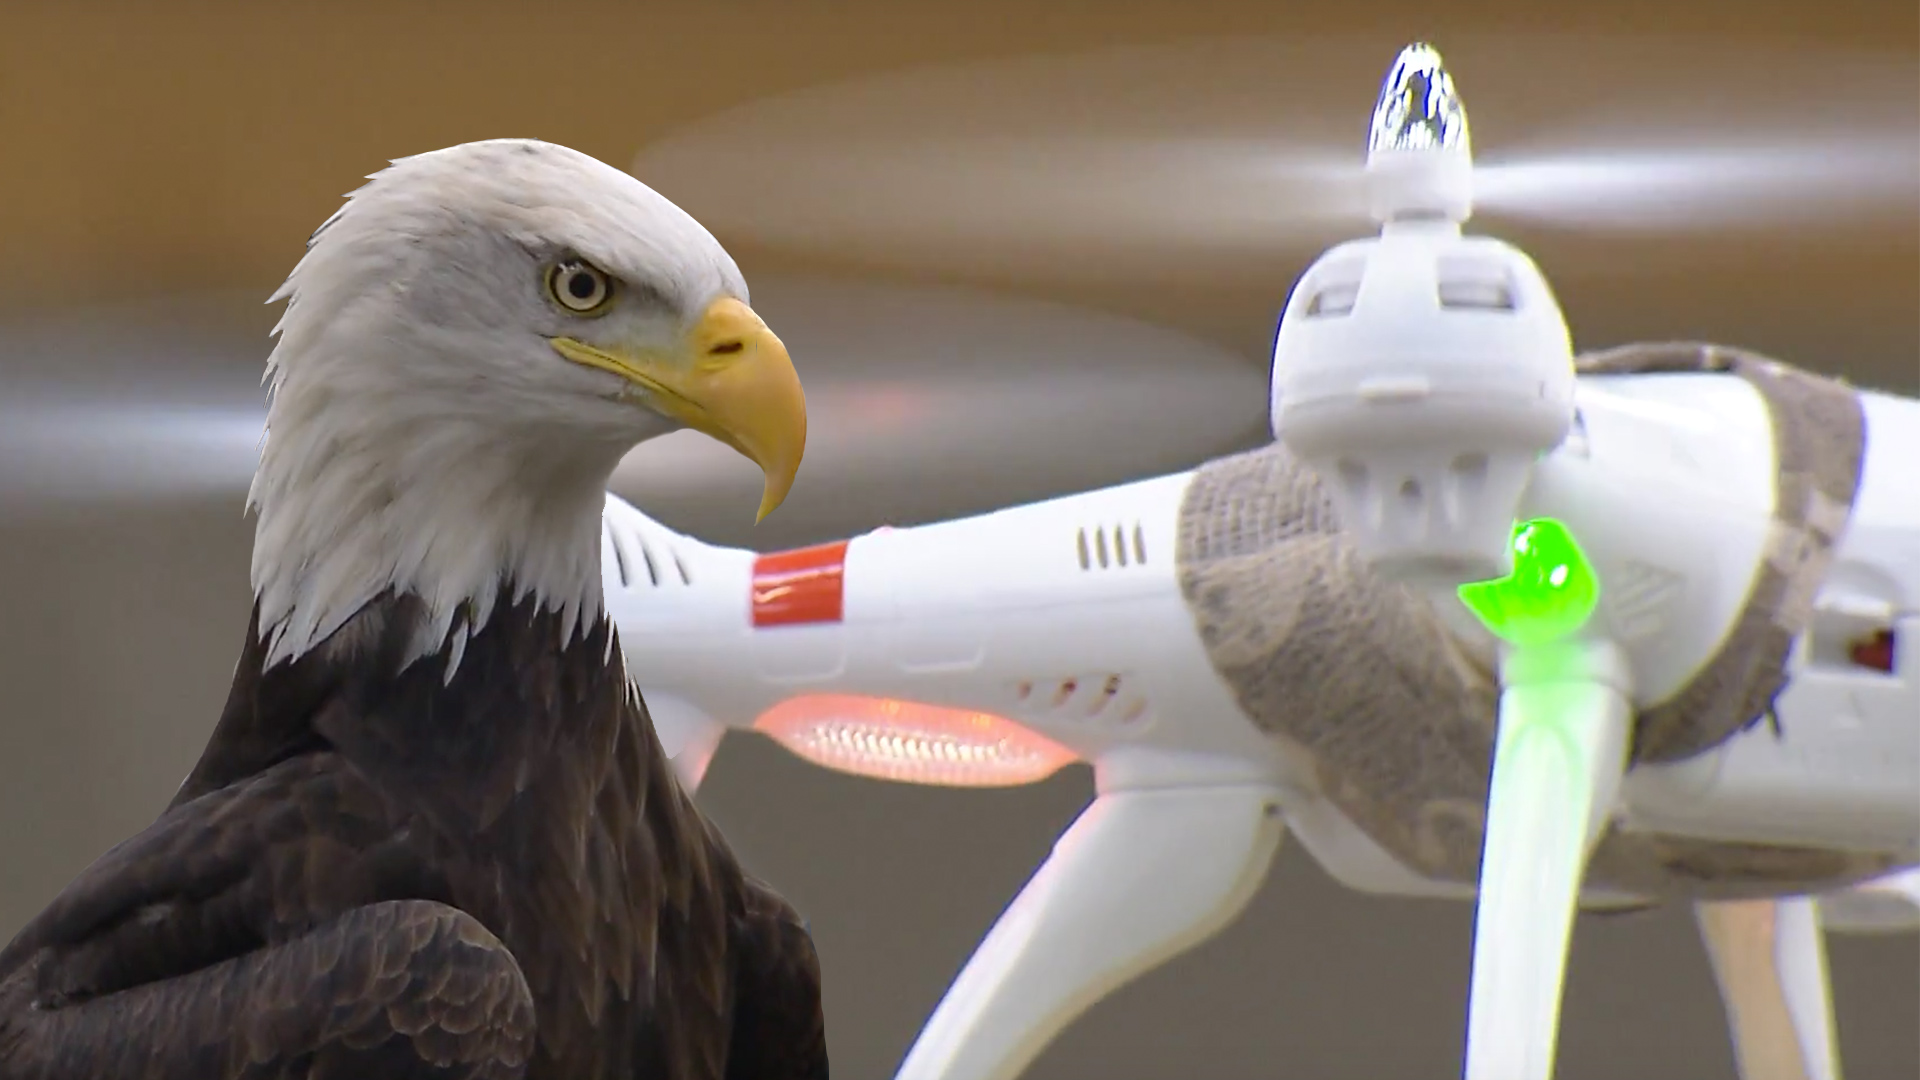 Video: Drone-snatching eagles ready to stop illegal flights (Tomorrow Daily 307)